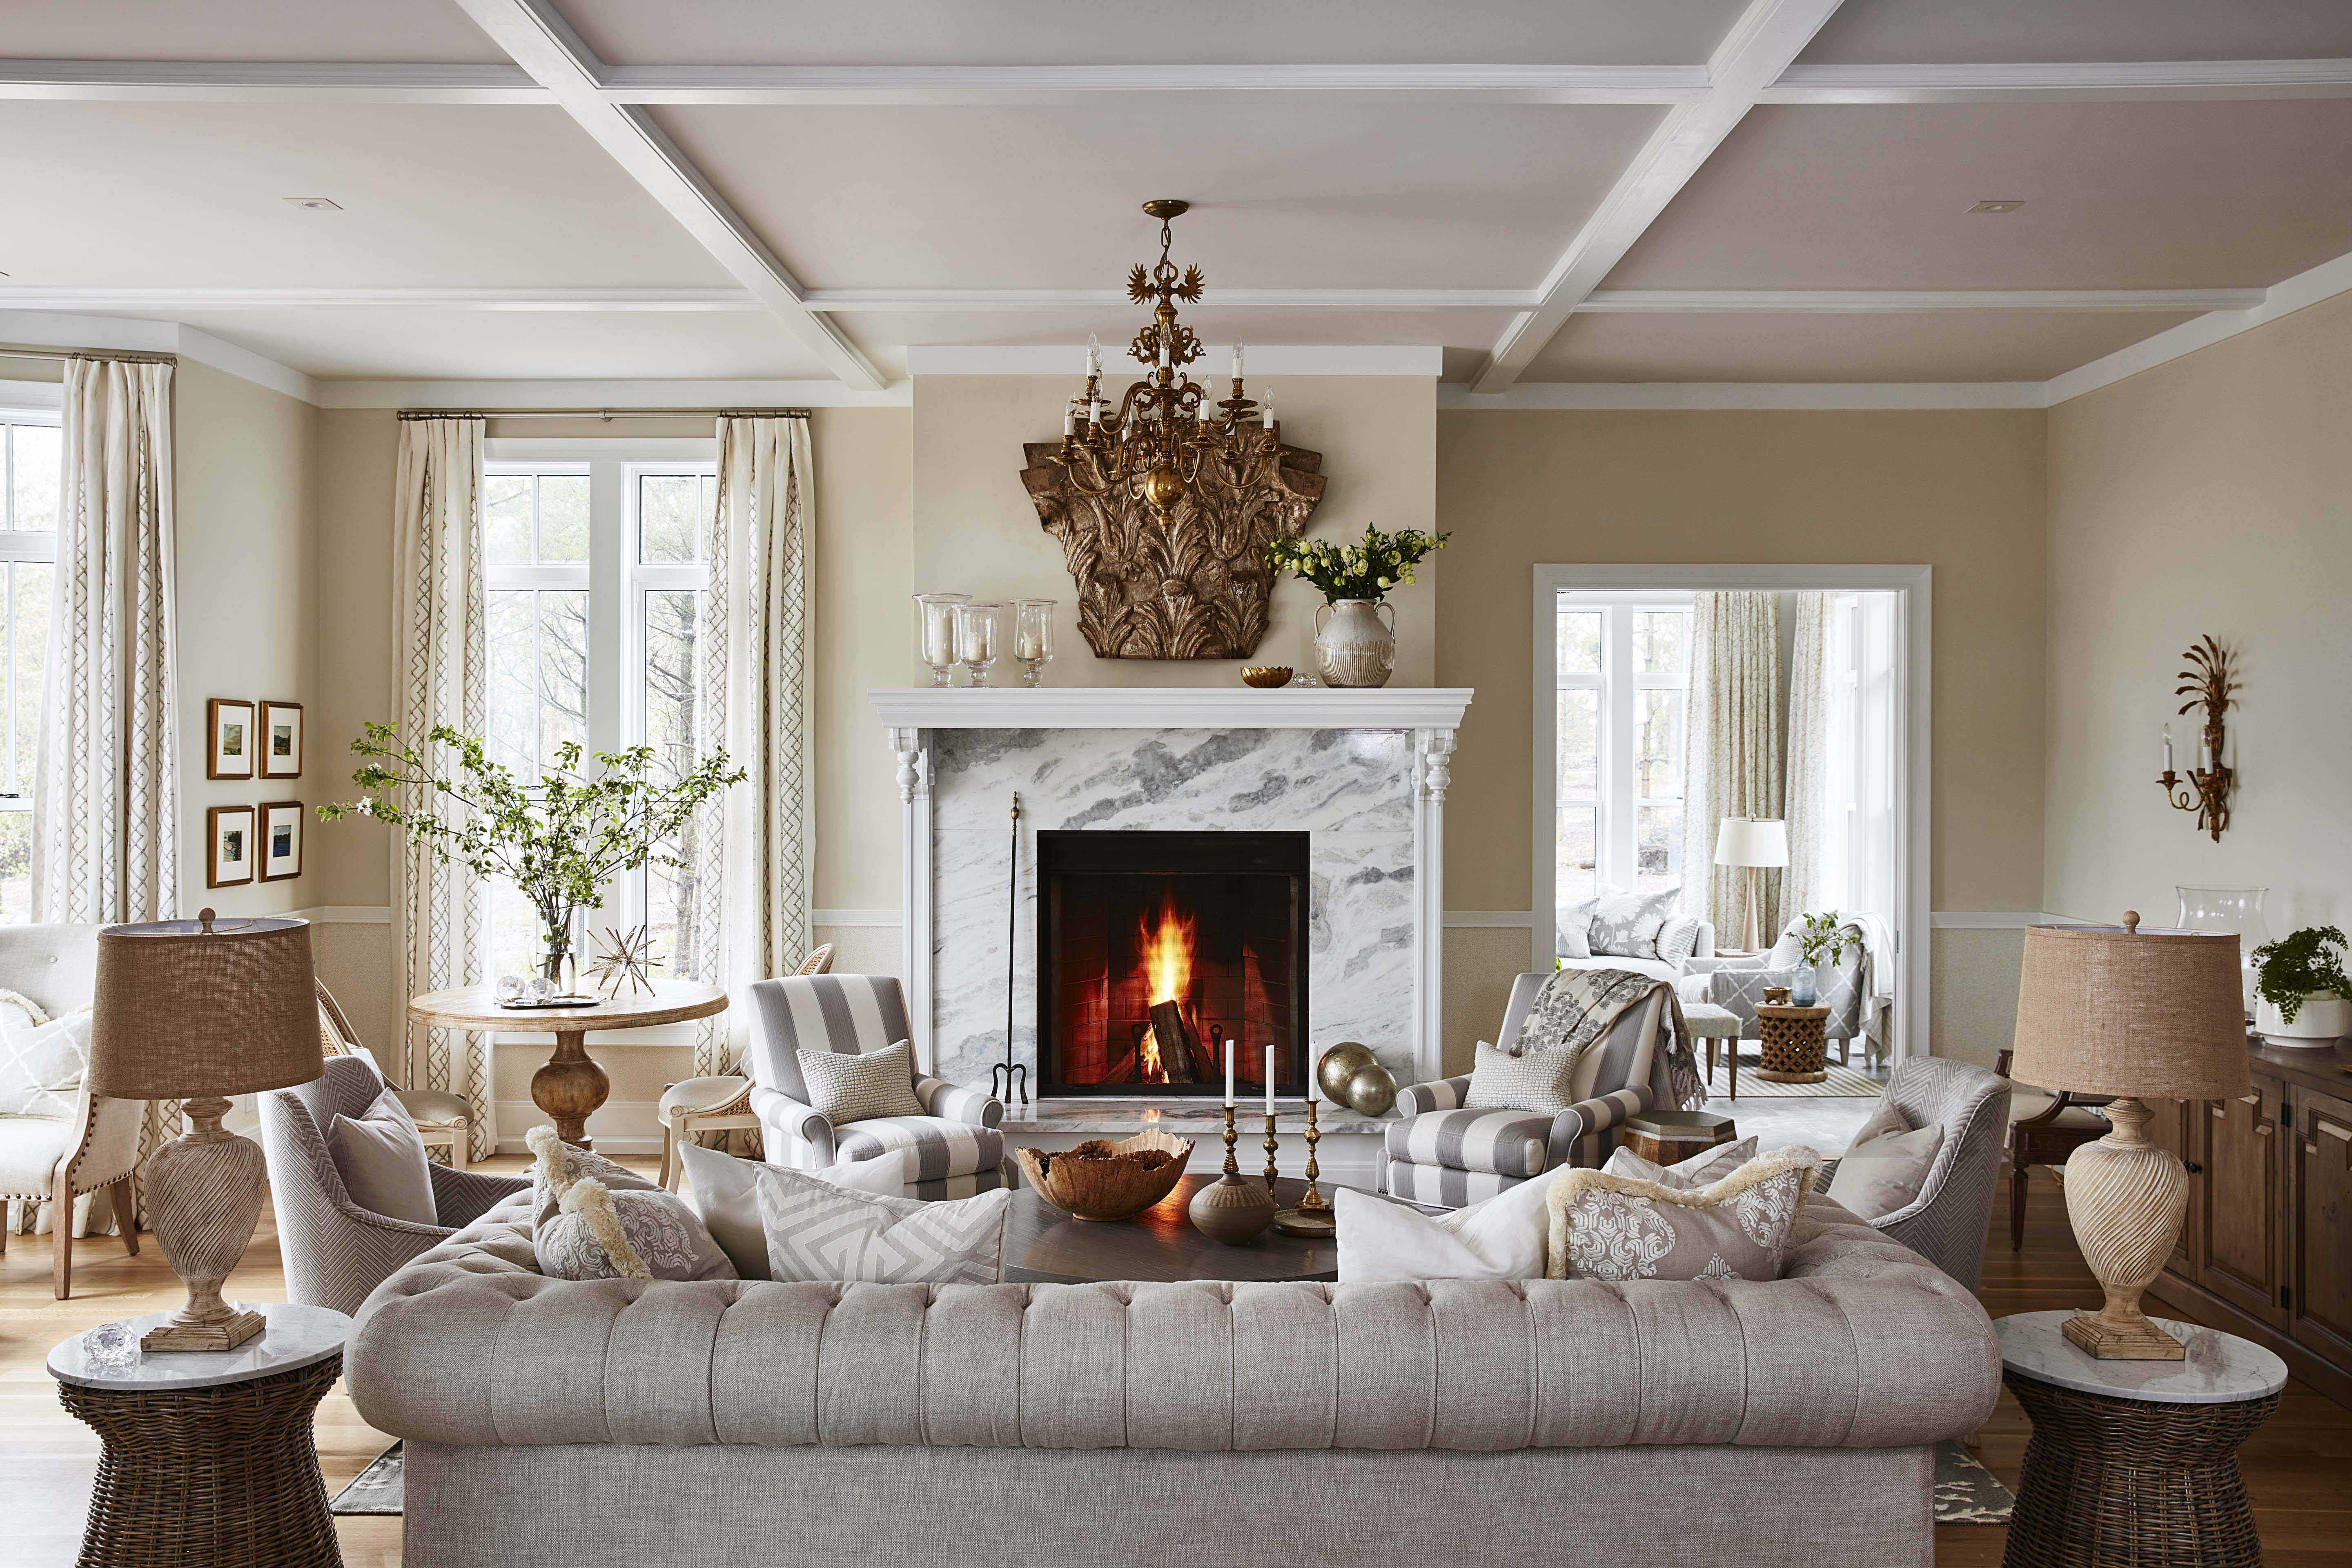 A show-stopping marble fireplace, neutral furniture and lots of textured fabrics create the luxurious look of this living room. #SarahRichardson #moderncountry